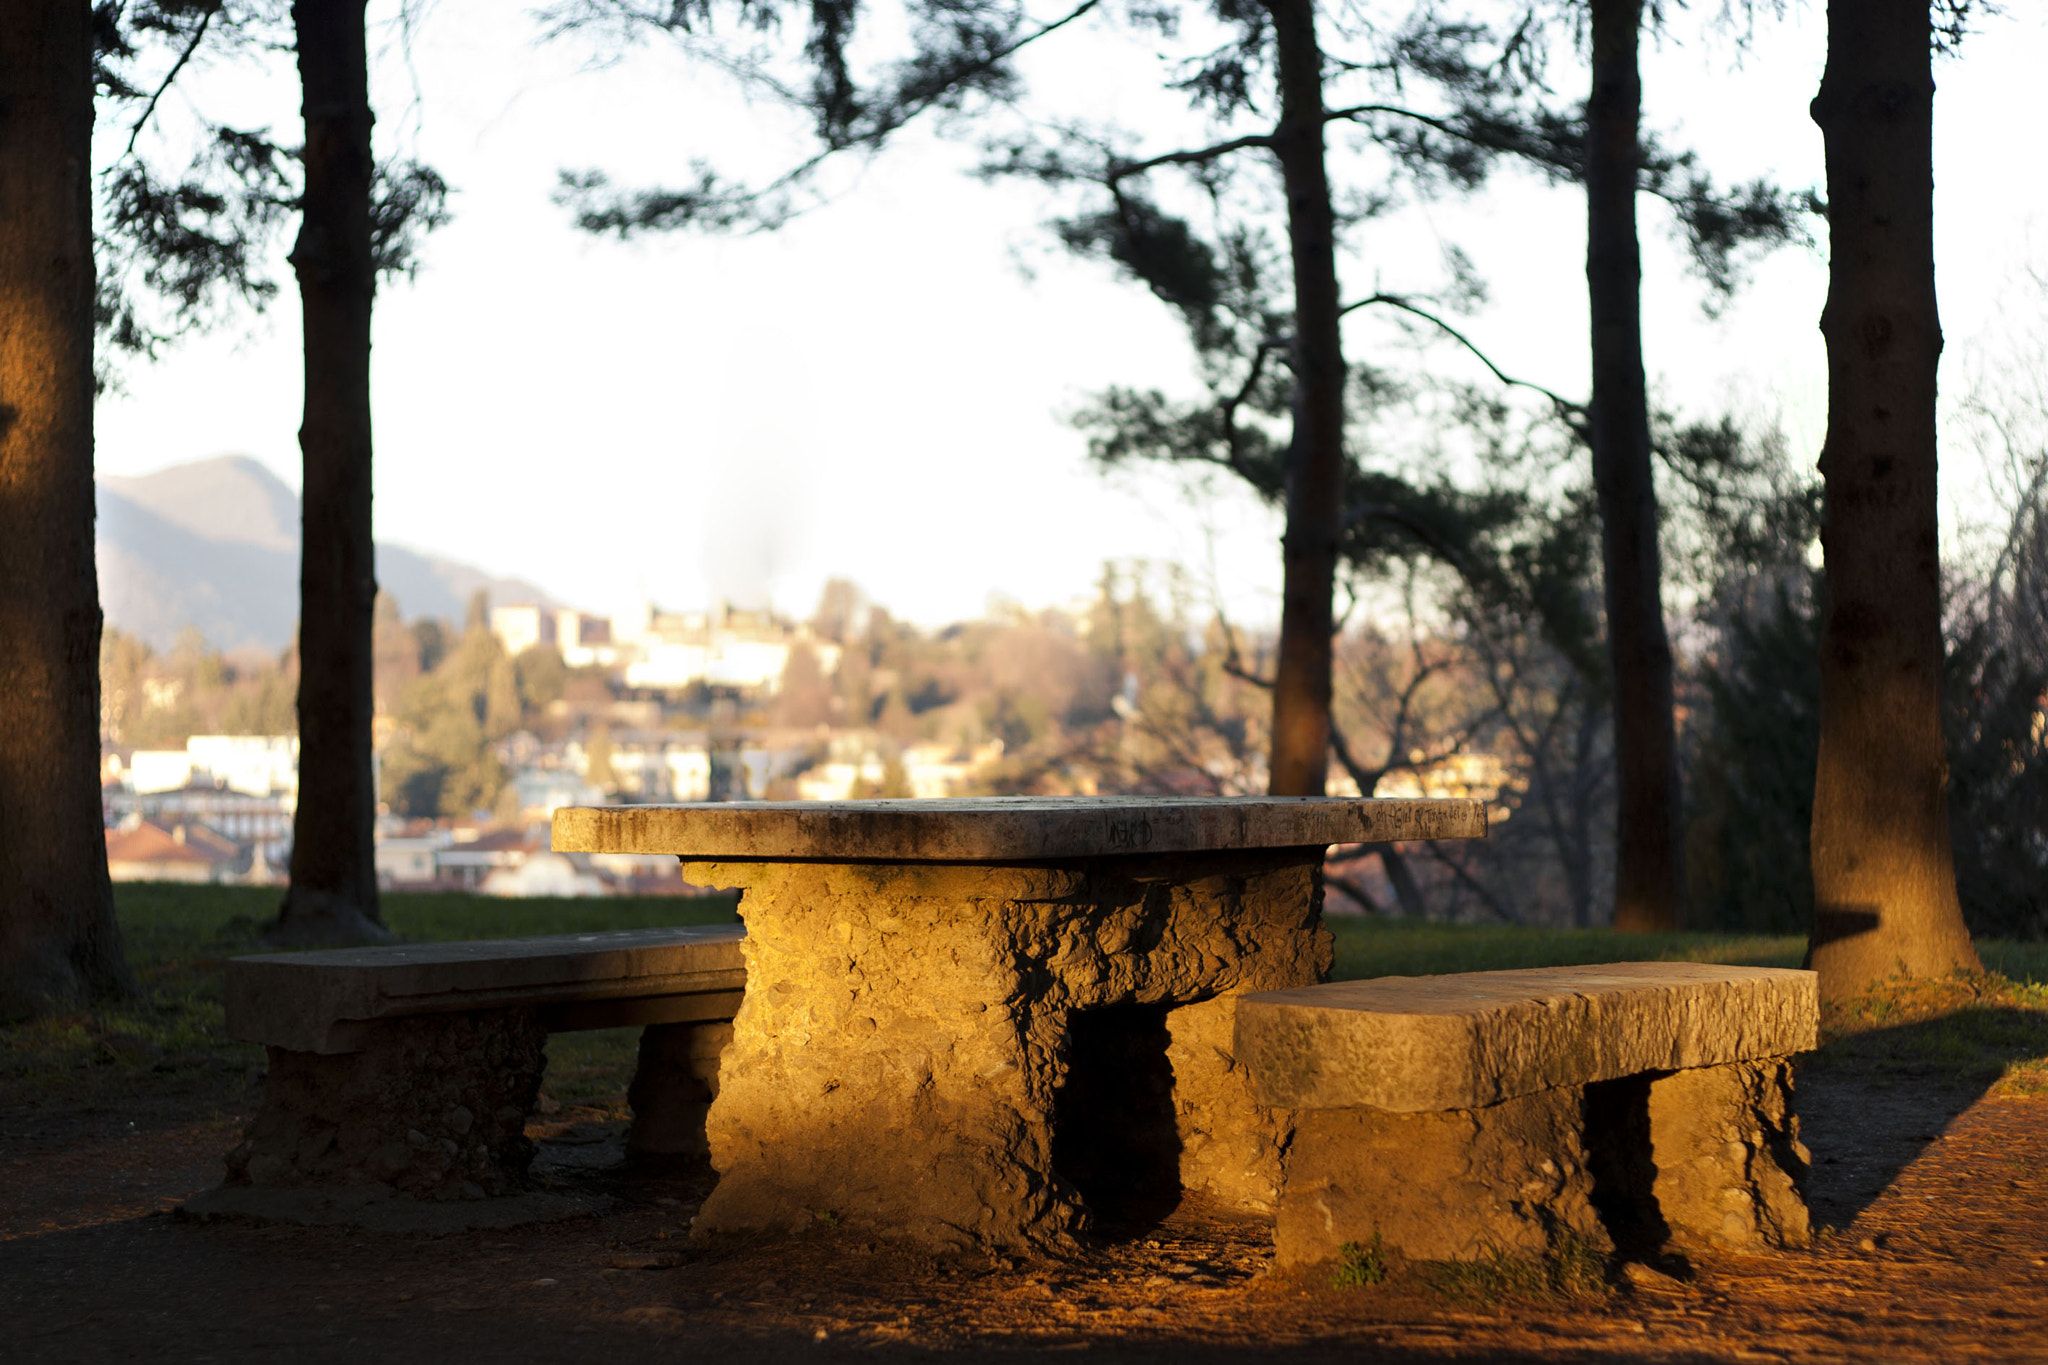 Photograph Stone table by Albano Piazza on 500px